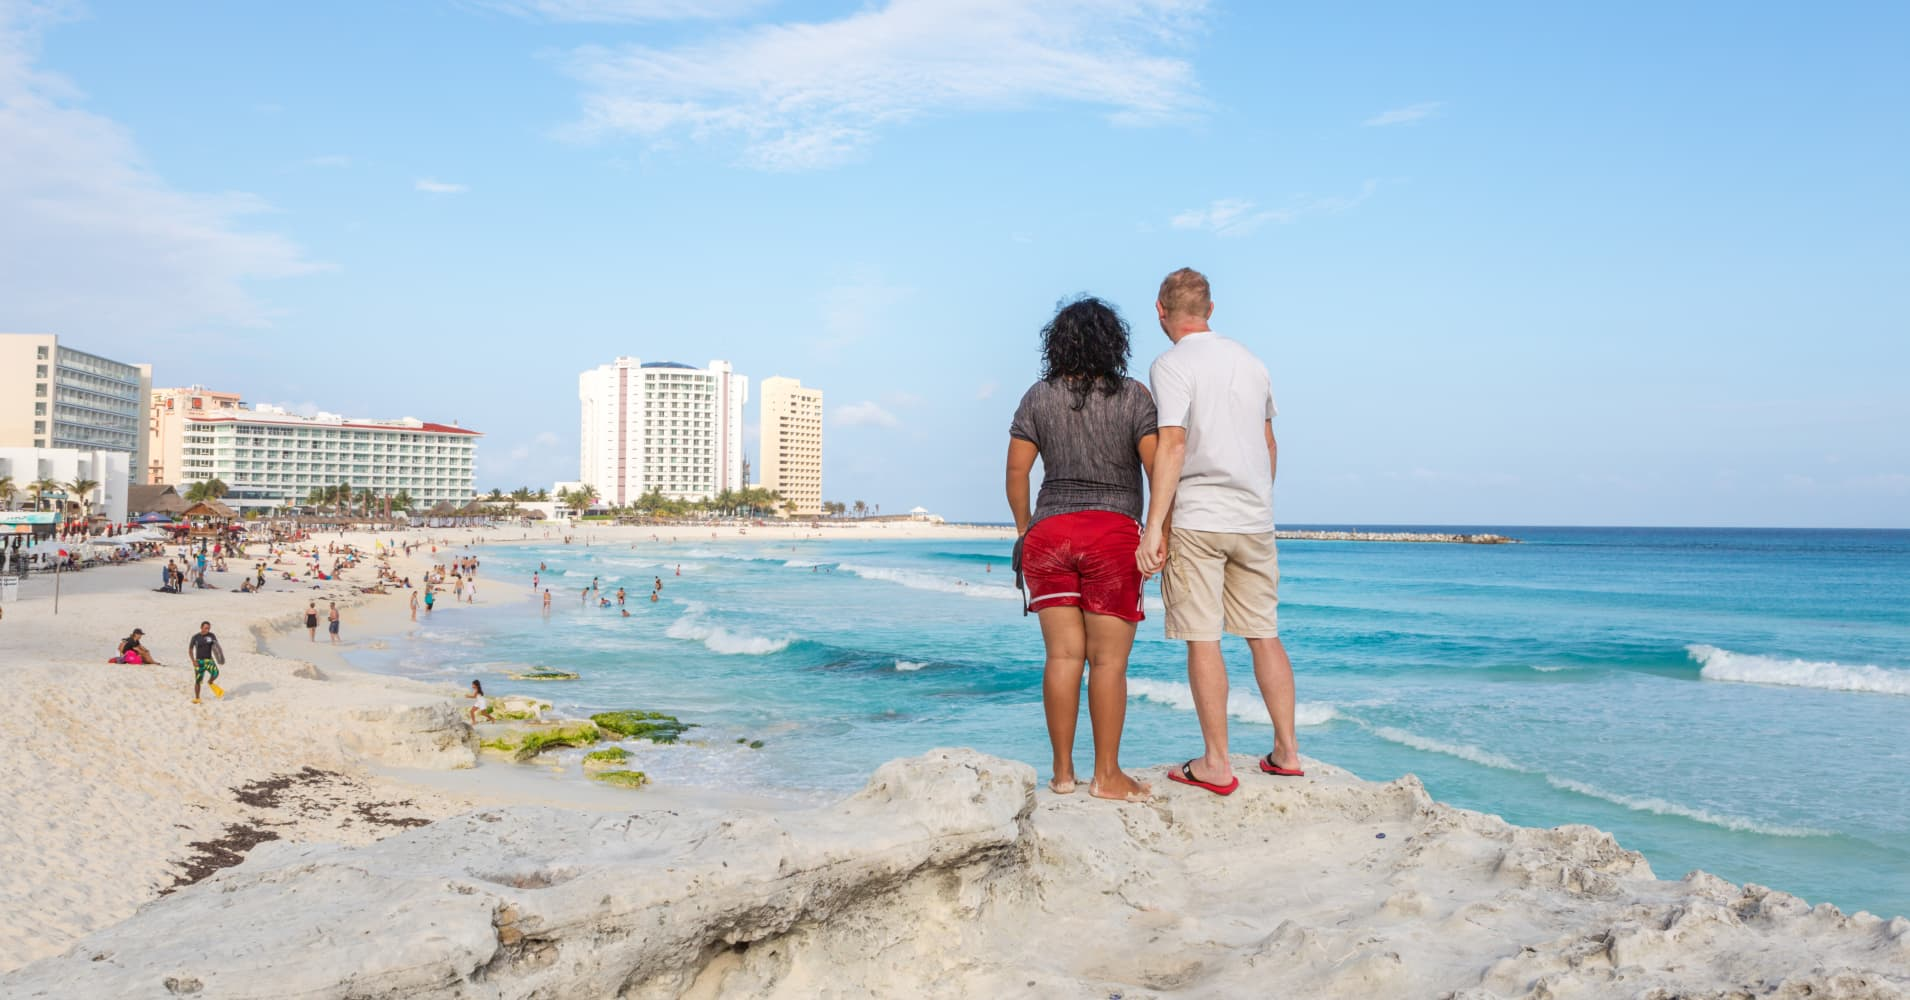 Tourist couple looking at Gaviota Azul beach, Cancun, Quintana Roo, Mexico.